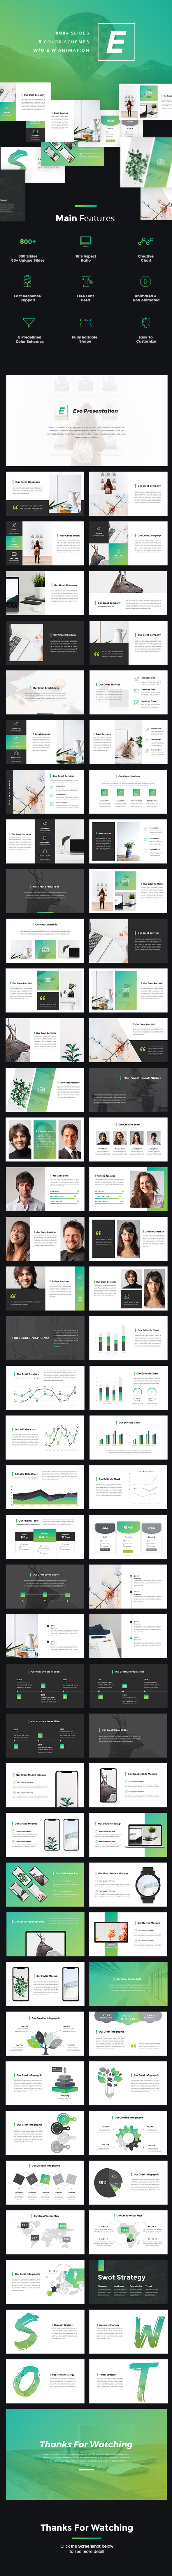 Evo - Creative Keynote Template - Creative Keynote Templates